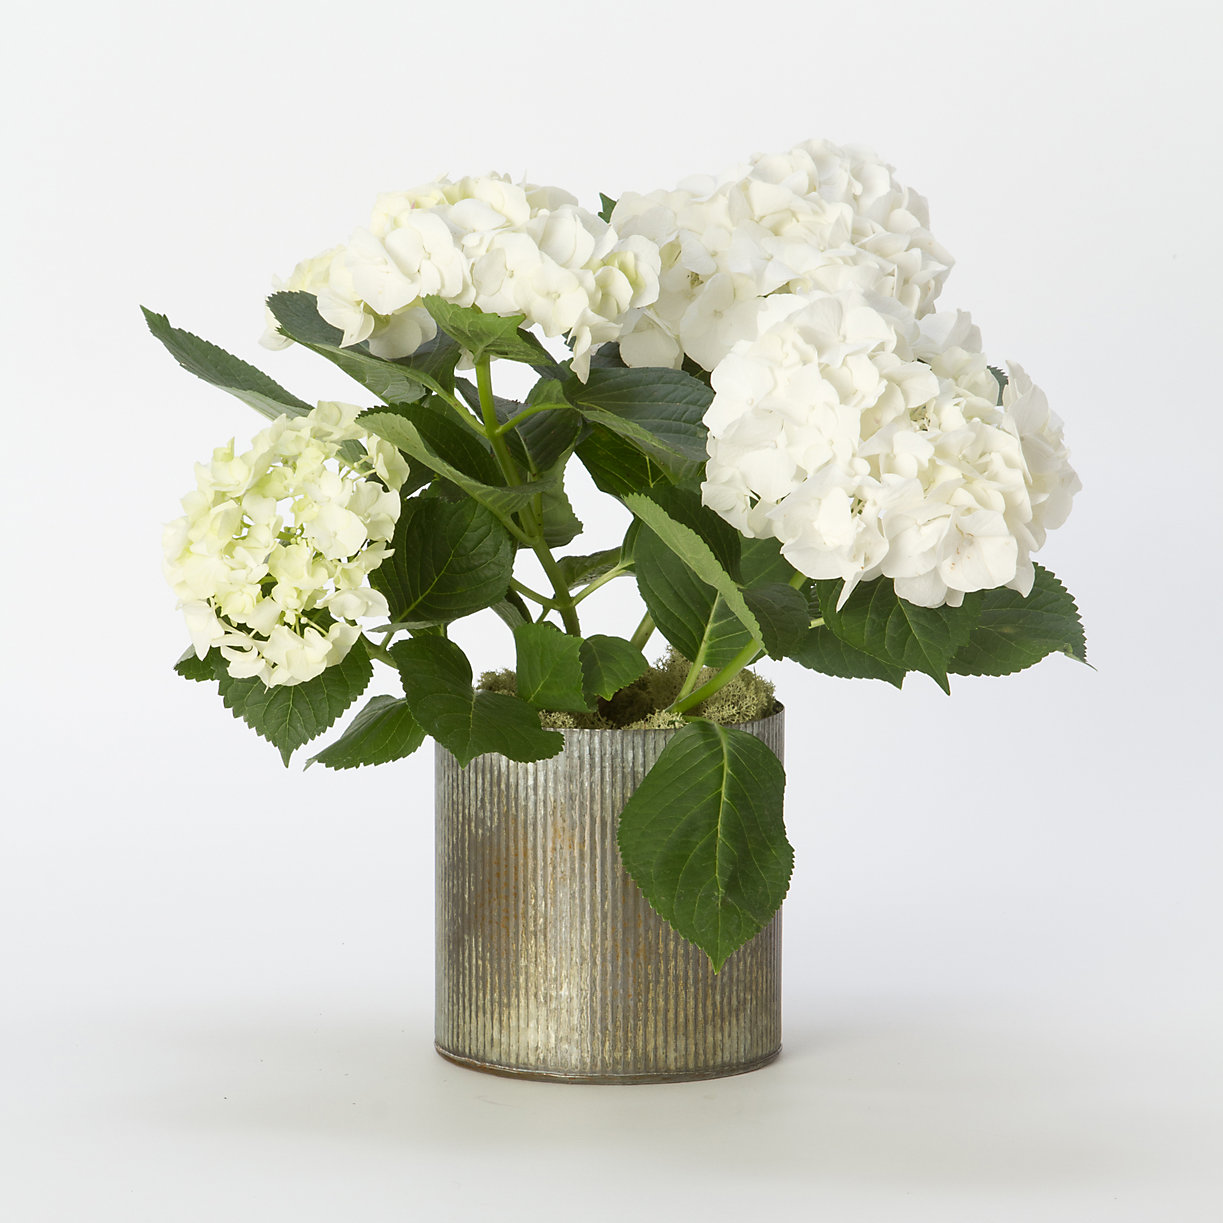 White Hydrangea House Plant Send Gifts To Jordan